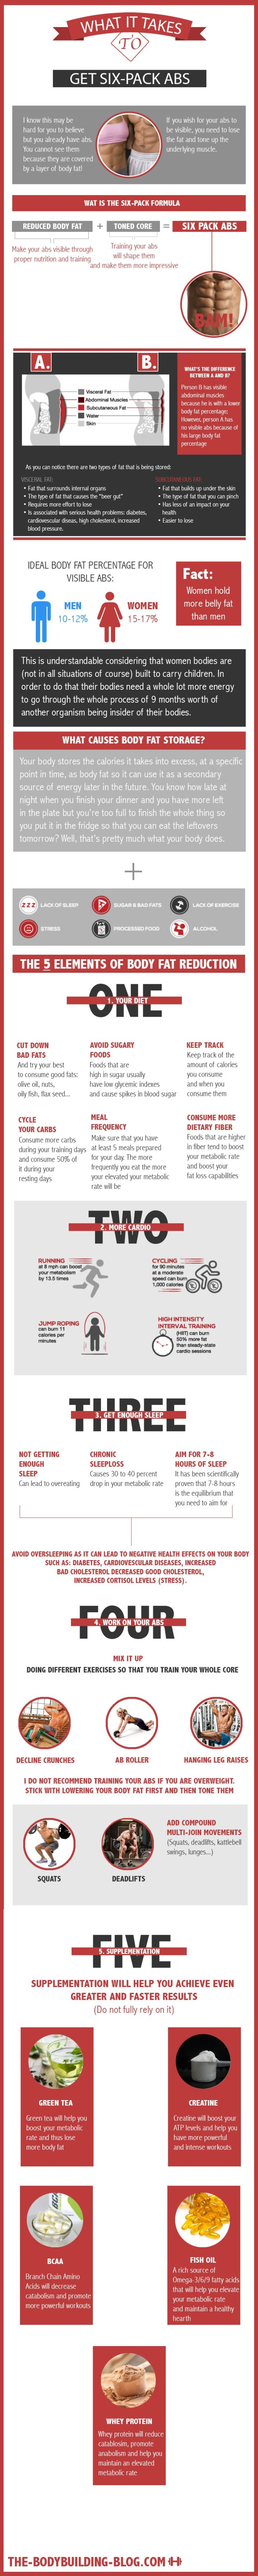 what-it-takes-to-get-six-pack-abs-five-elements-to-body-fat-reduction.jpg